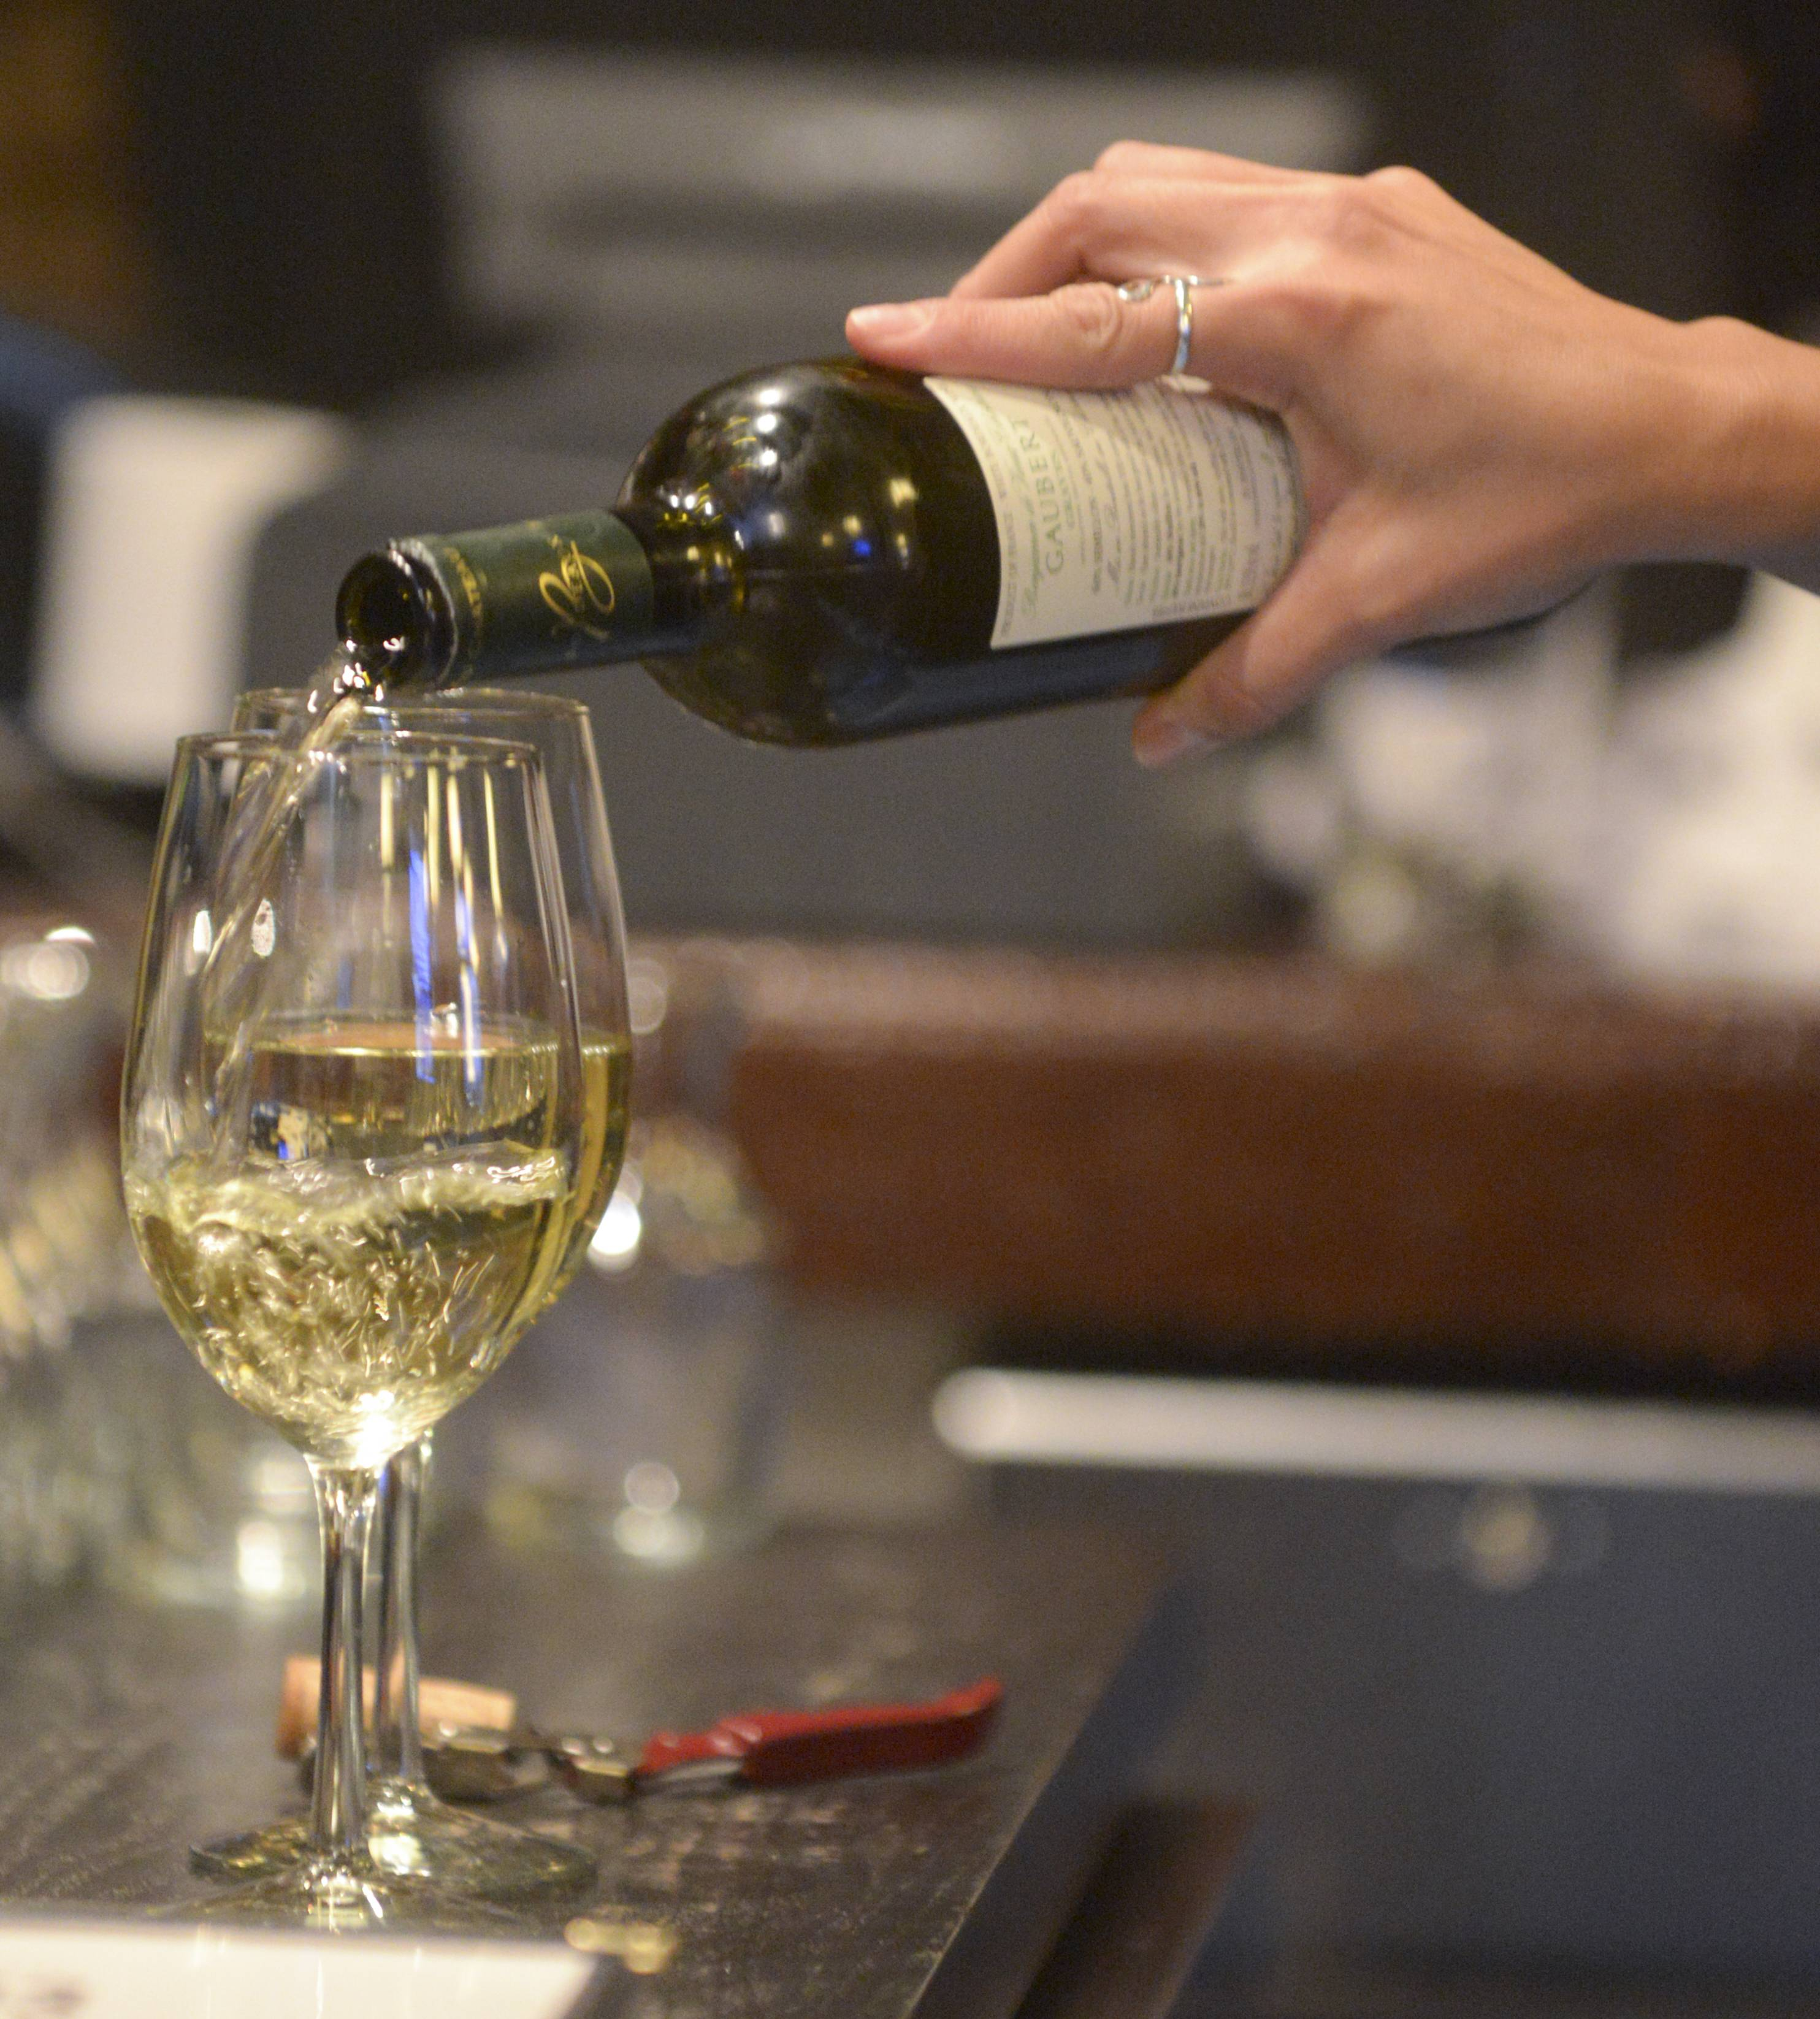 Wines from France and Italy share the spotlight at 1913 Restaurant and Wine Bar in Roselle.